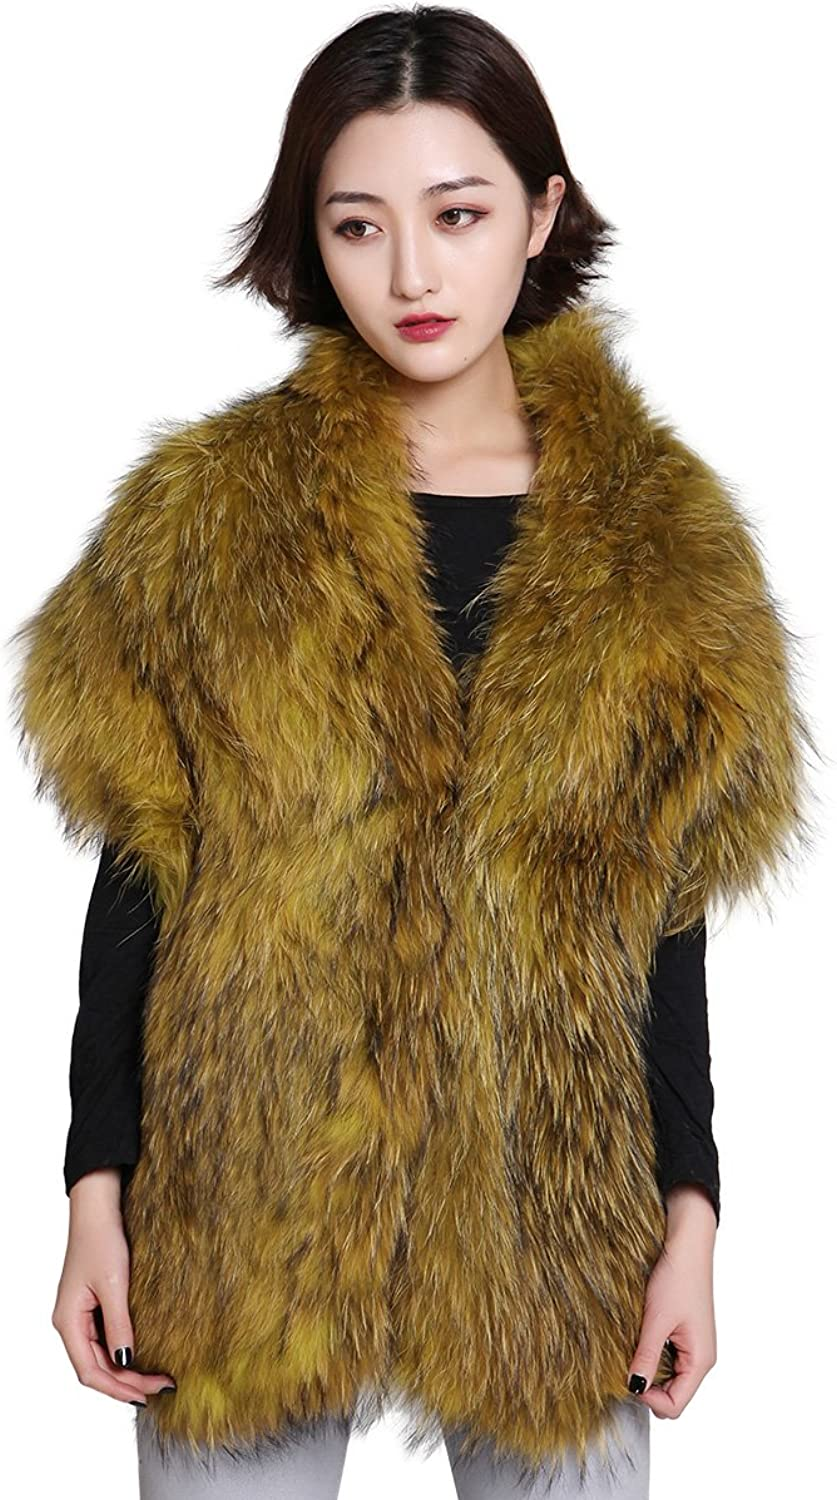 FEISSI Knitted Raccoon Fur Stole Shawl Wrap